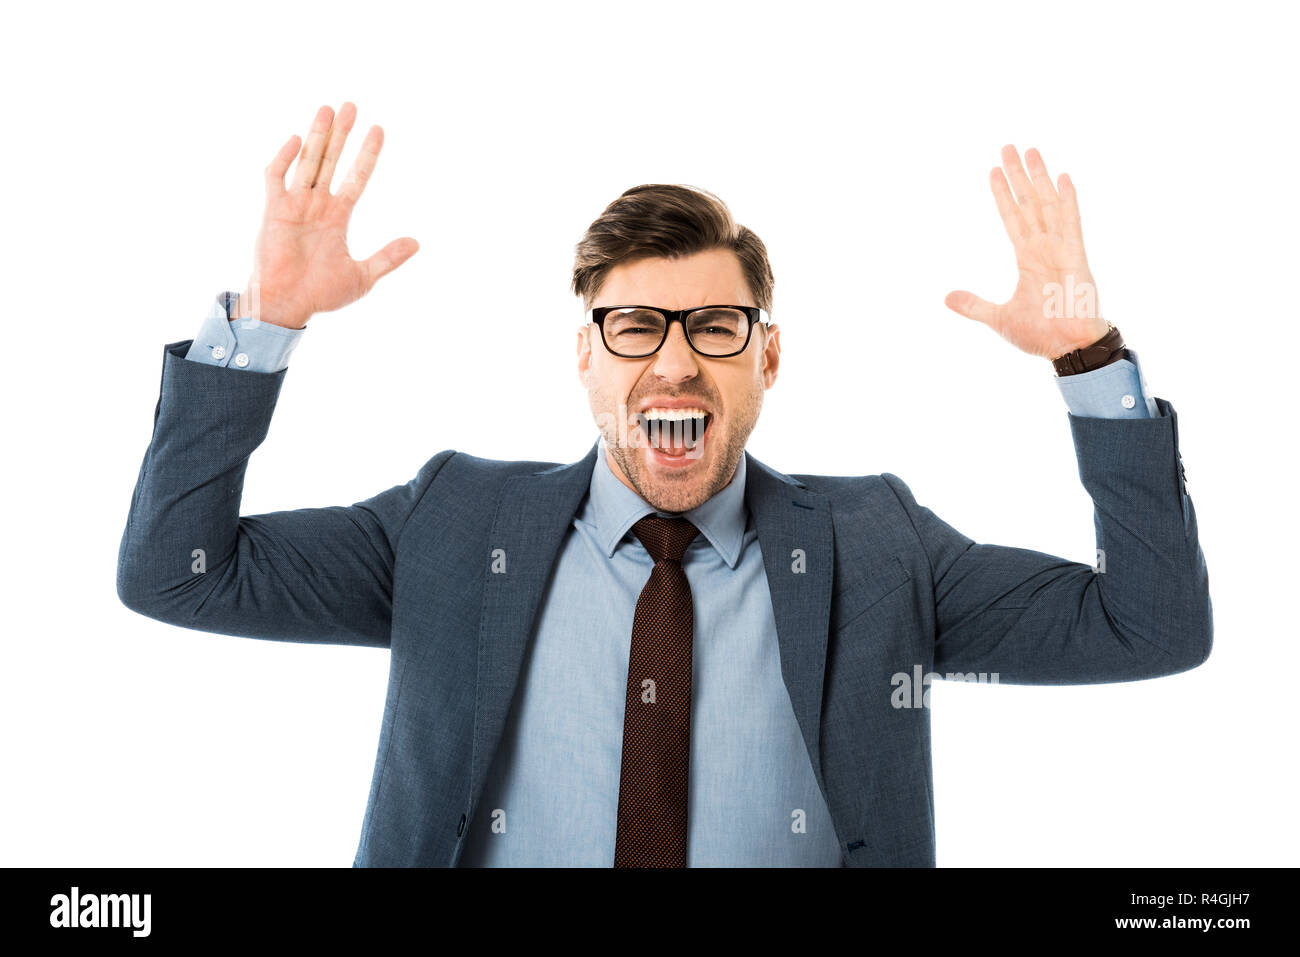 emotional businessman in suit rejoicing and gesturing isolated on white Stock Photo